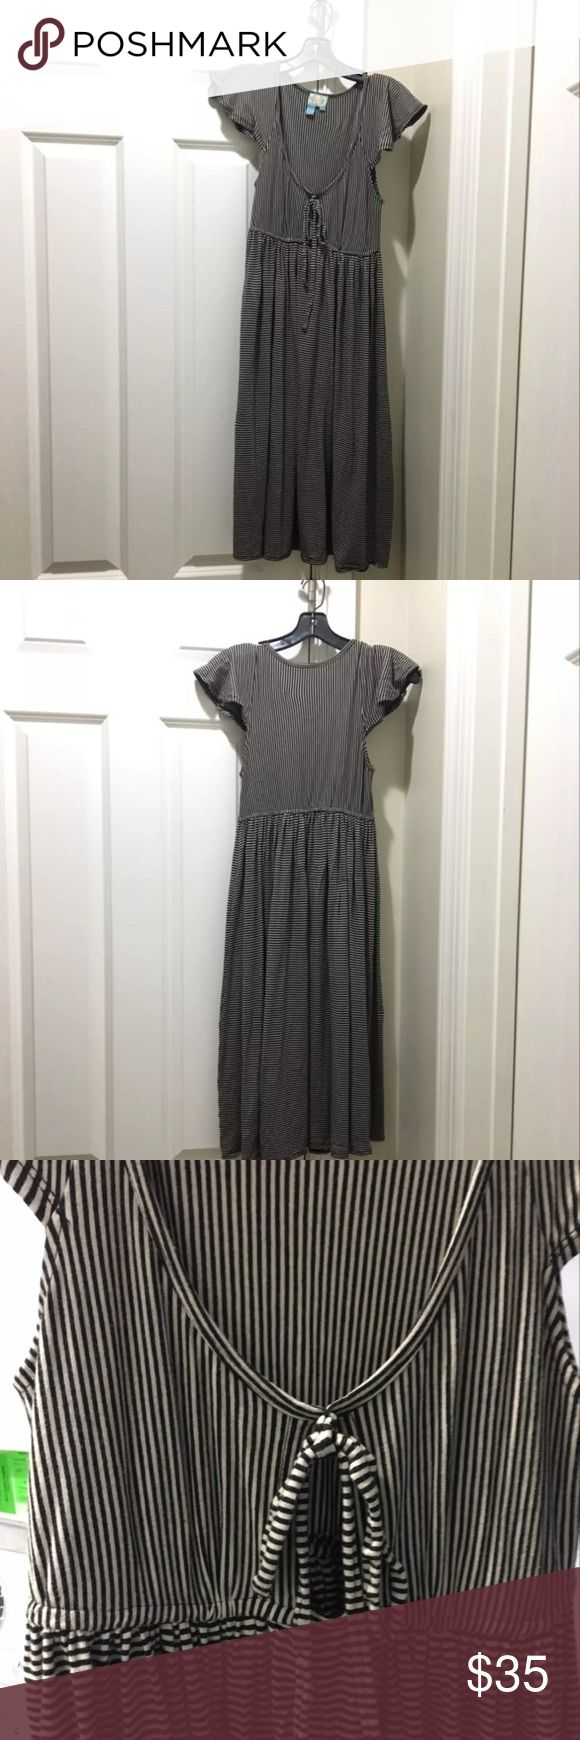 Plenty by Tracy Reese jersey striped midi dress Plenty by Tracy Reese dress. Size P (XS). Dress is a great everyday jersey fabric with cute black & tan stripes. Top has now detailing with great cut out to make this dress standout. Midi length. Open to offers! Plenty by Tracy Reese Dresses Midi